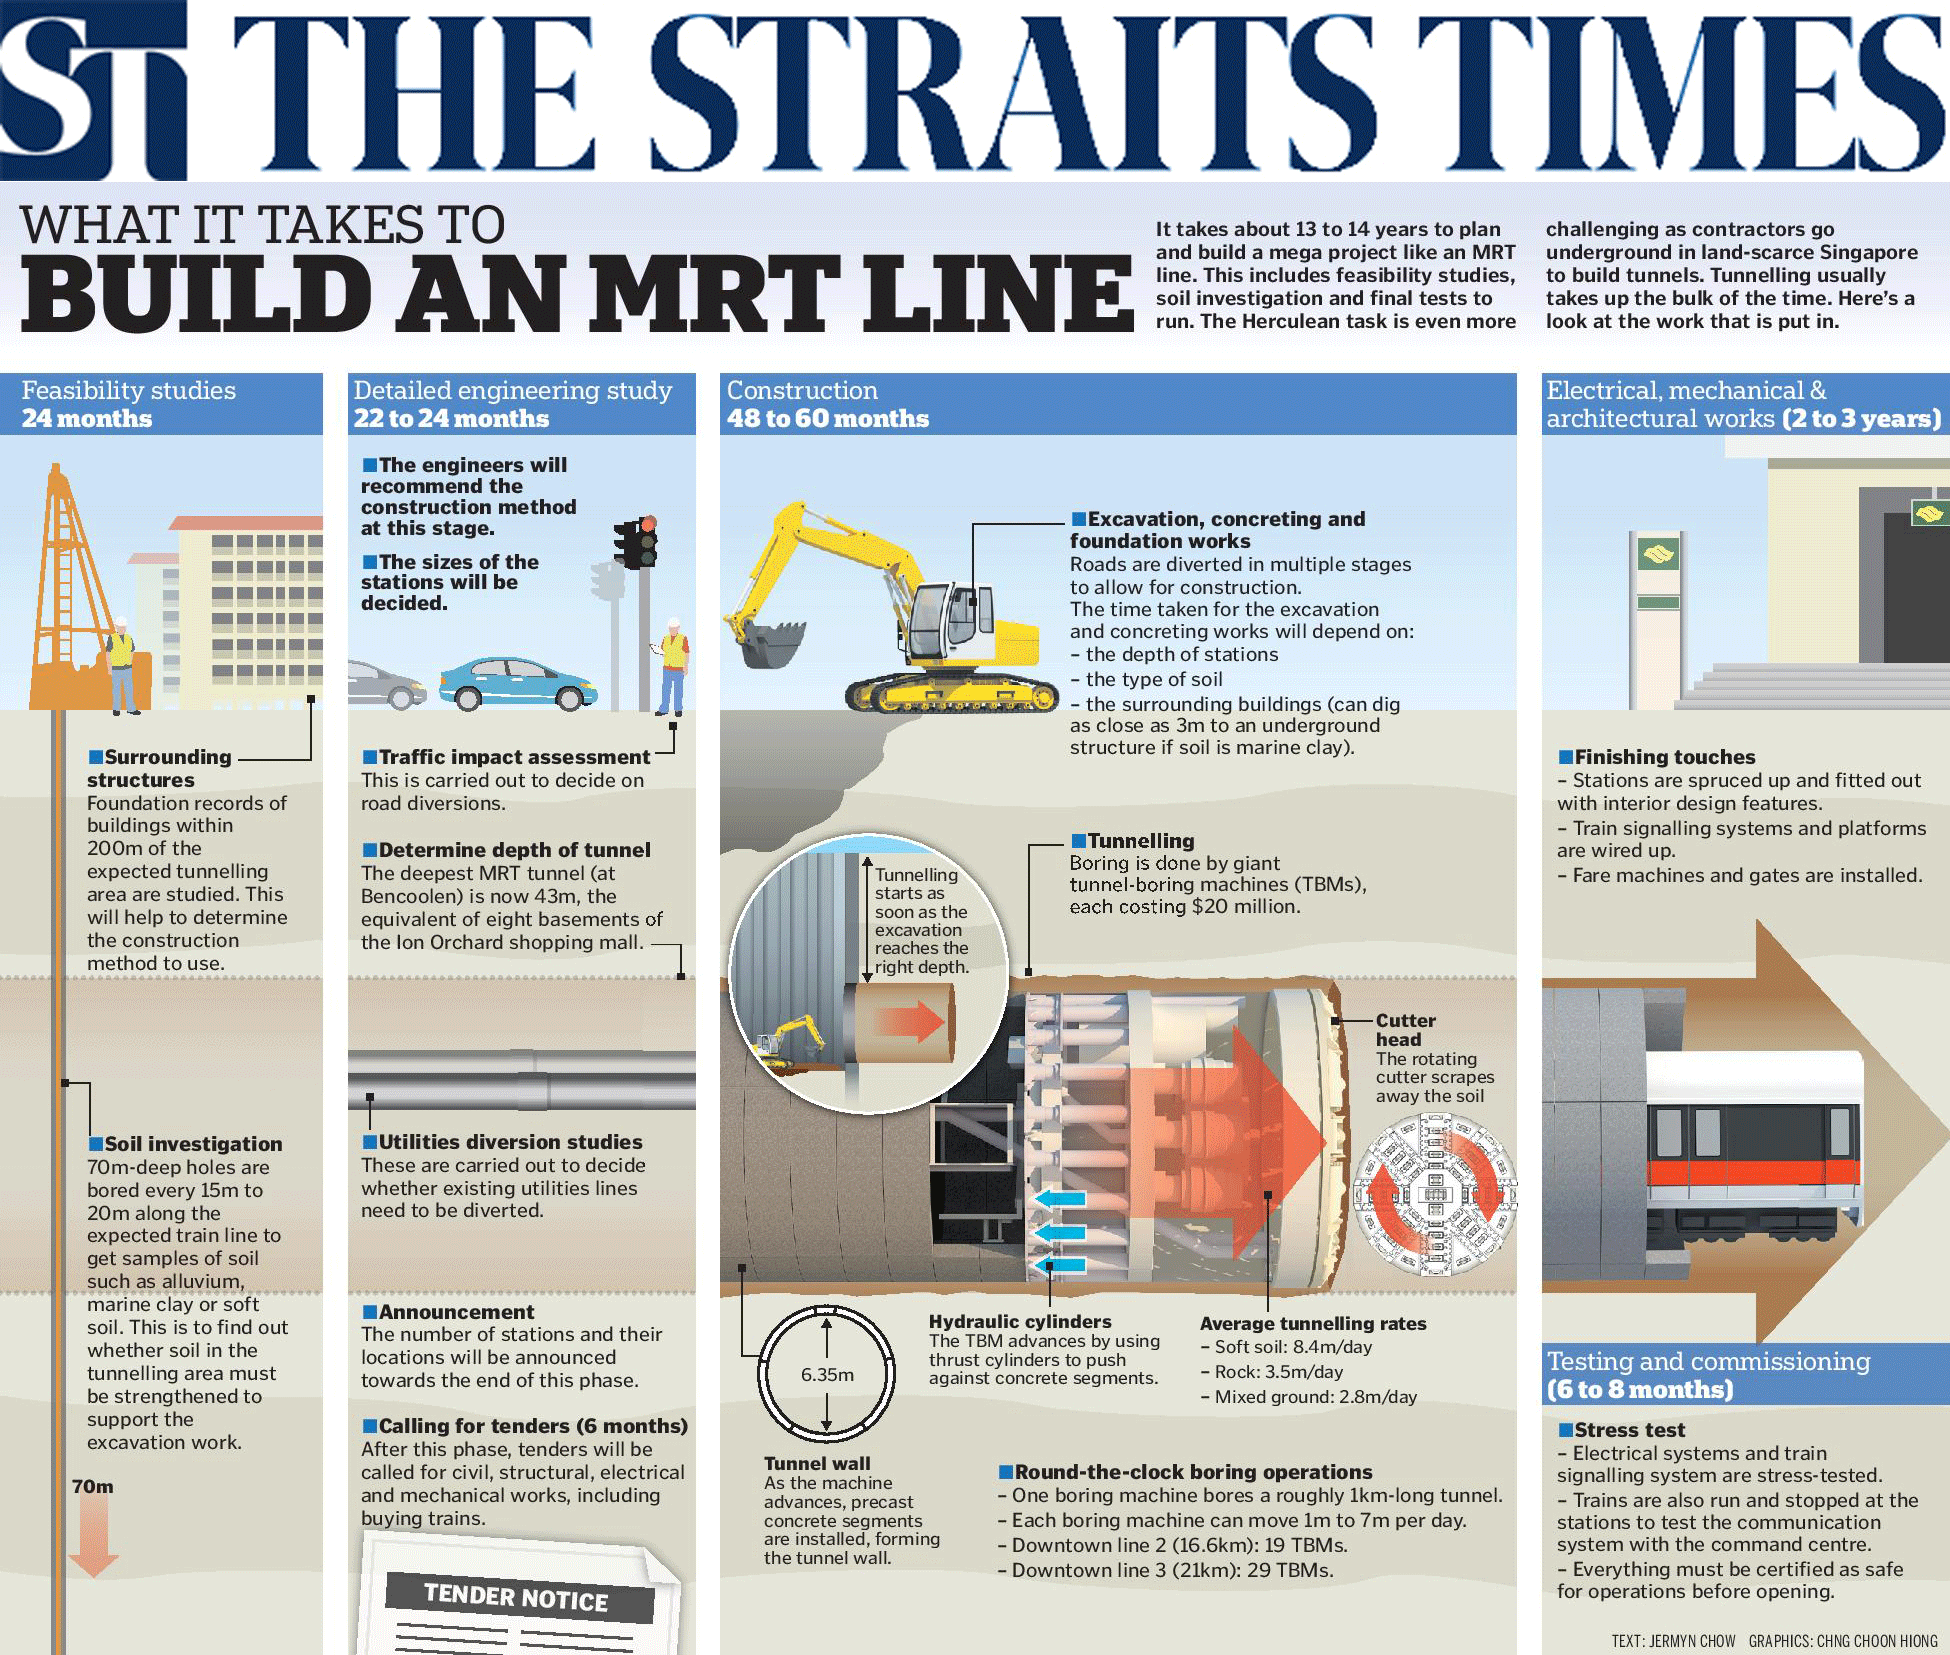 The Straits Times 2013 - What it takes to build an MRT line